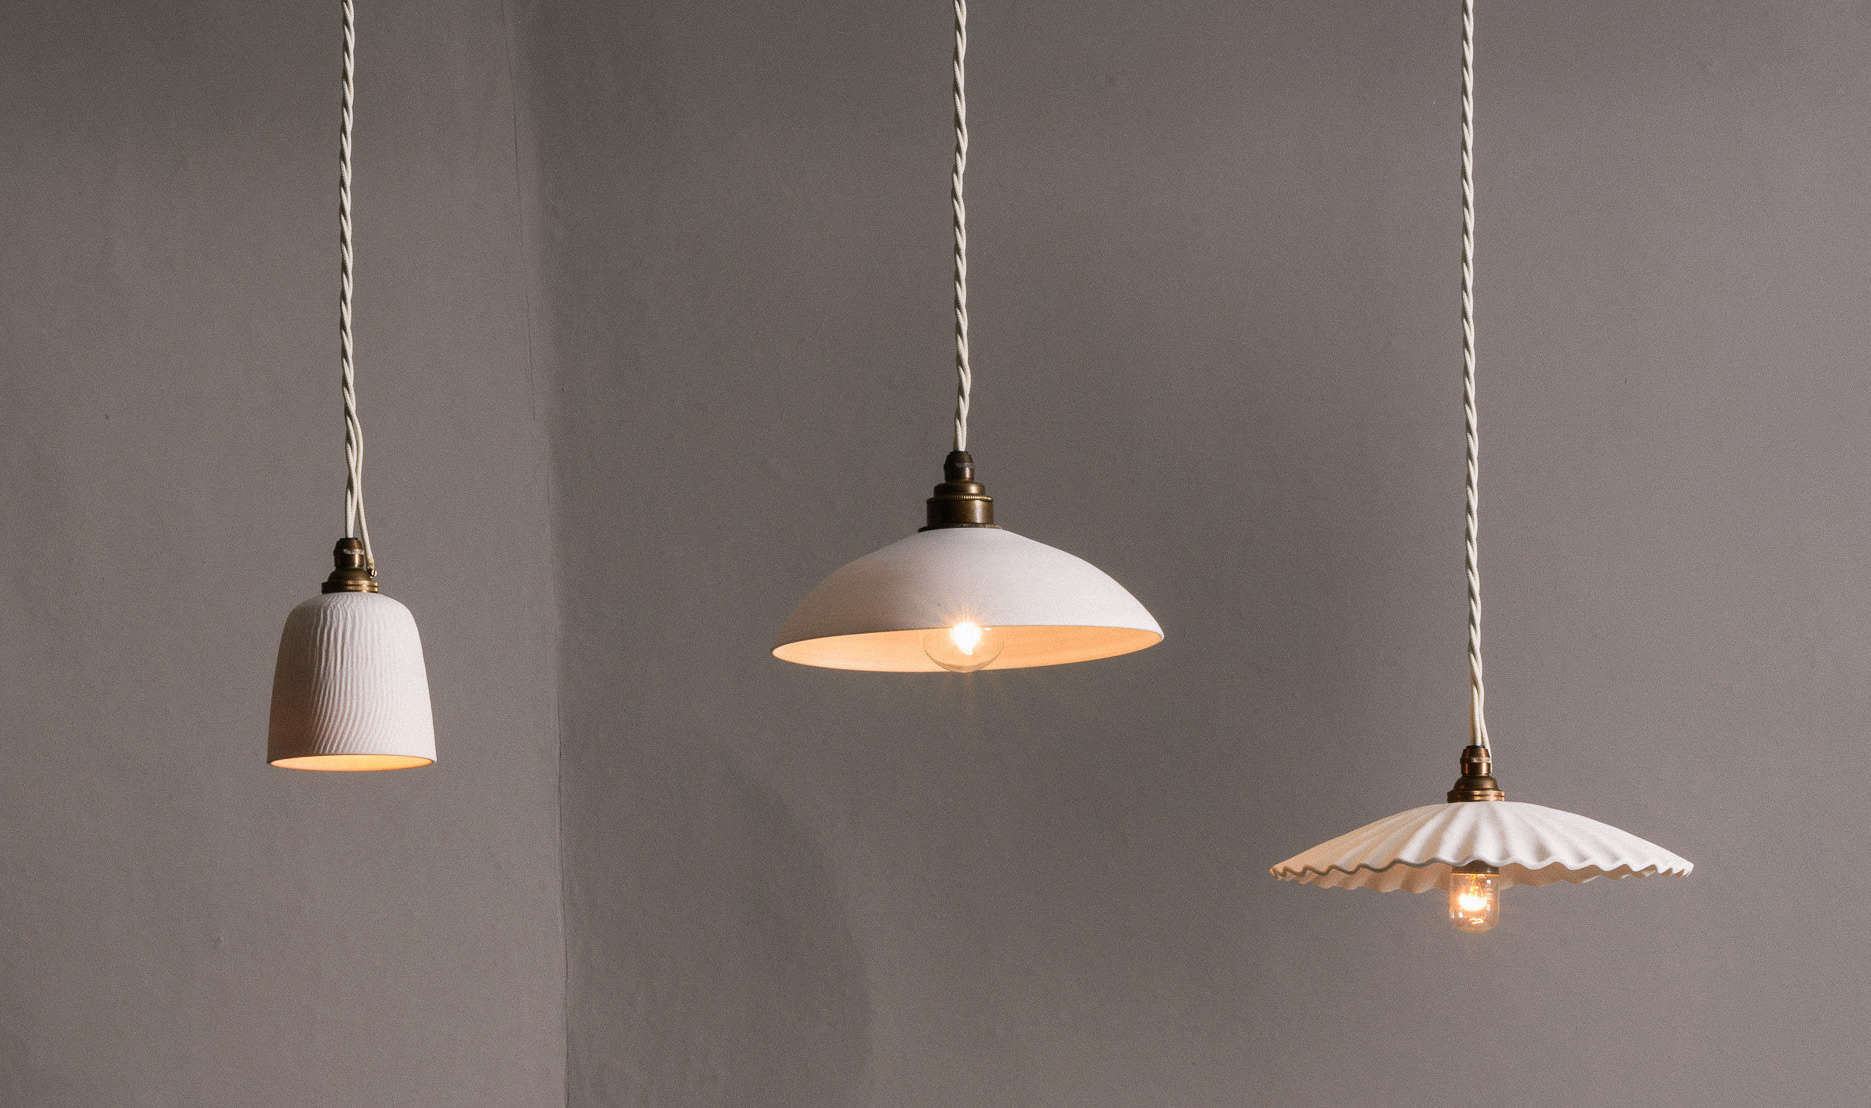 New from deVol: A NYC Showroom and Porcelain Pendant Lights, Handmade in England